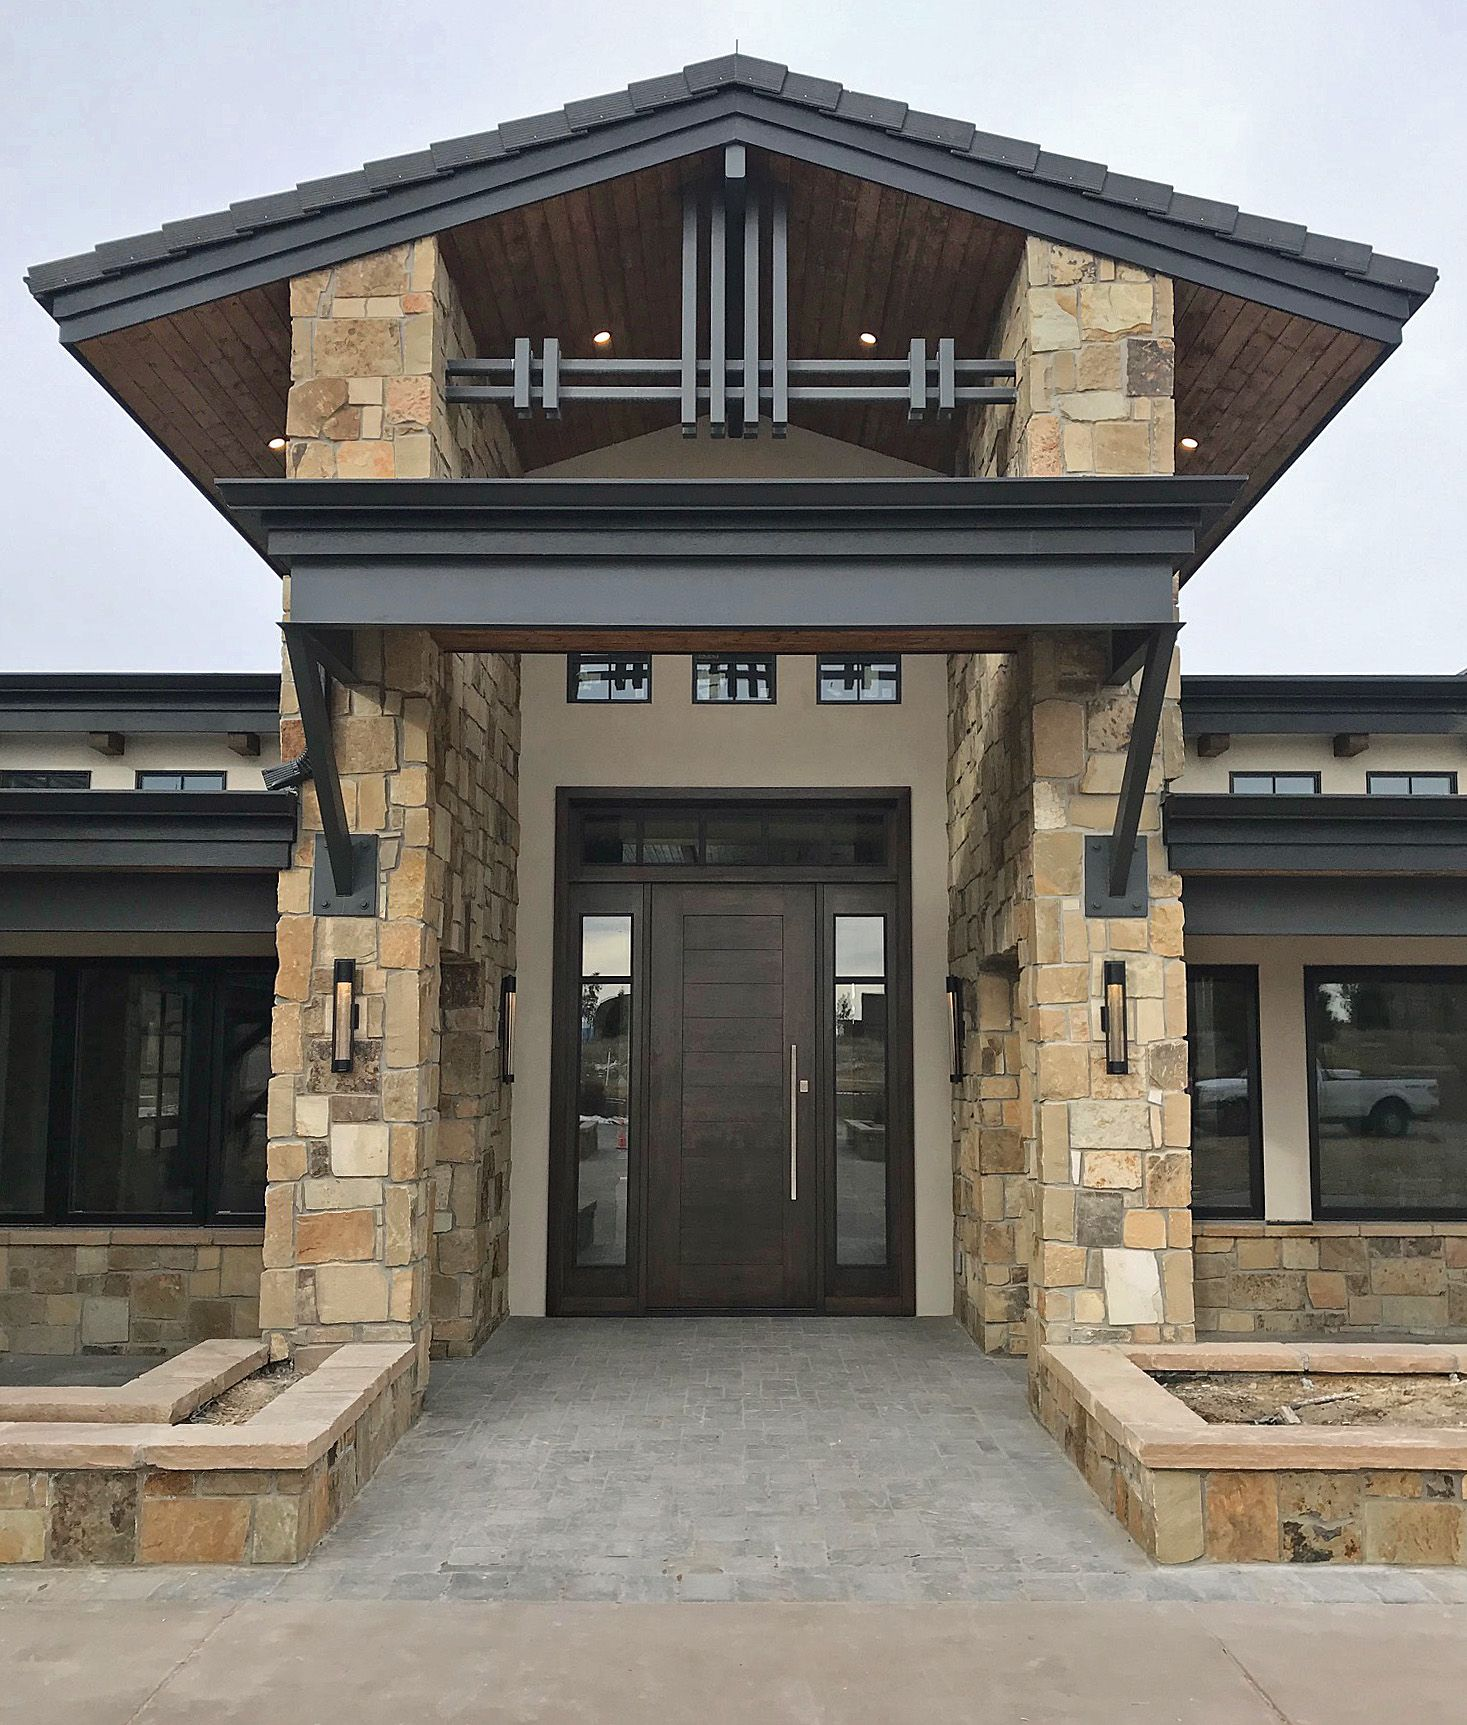 With All The Interesting Details And Large Scale This New Home S Entrance Makes A Dramatic Statement The Door Alone House Entrance Grand Entrance New Homes